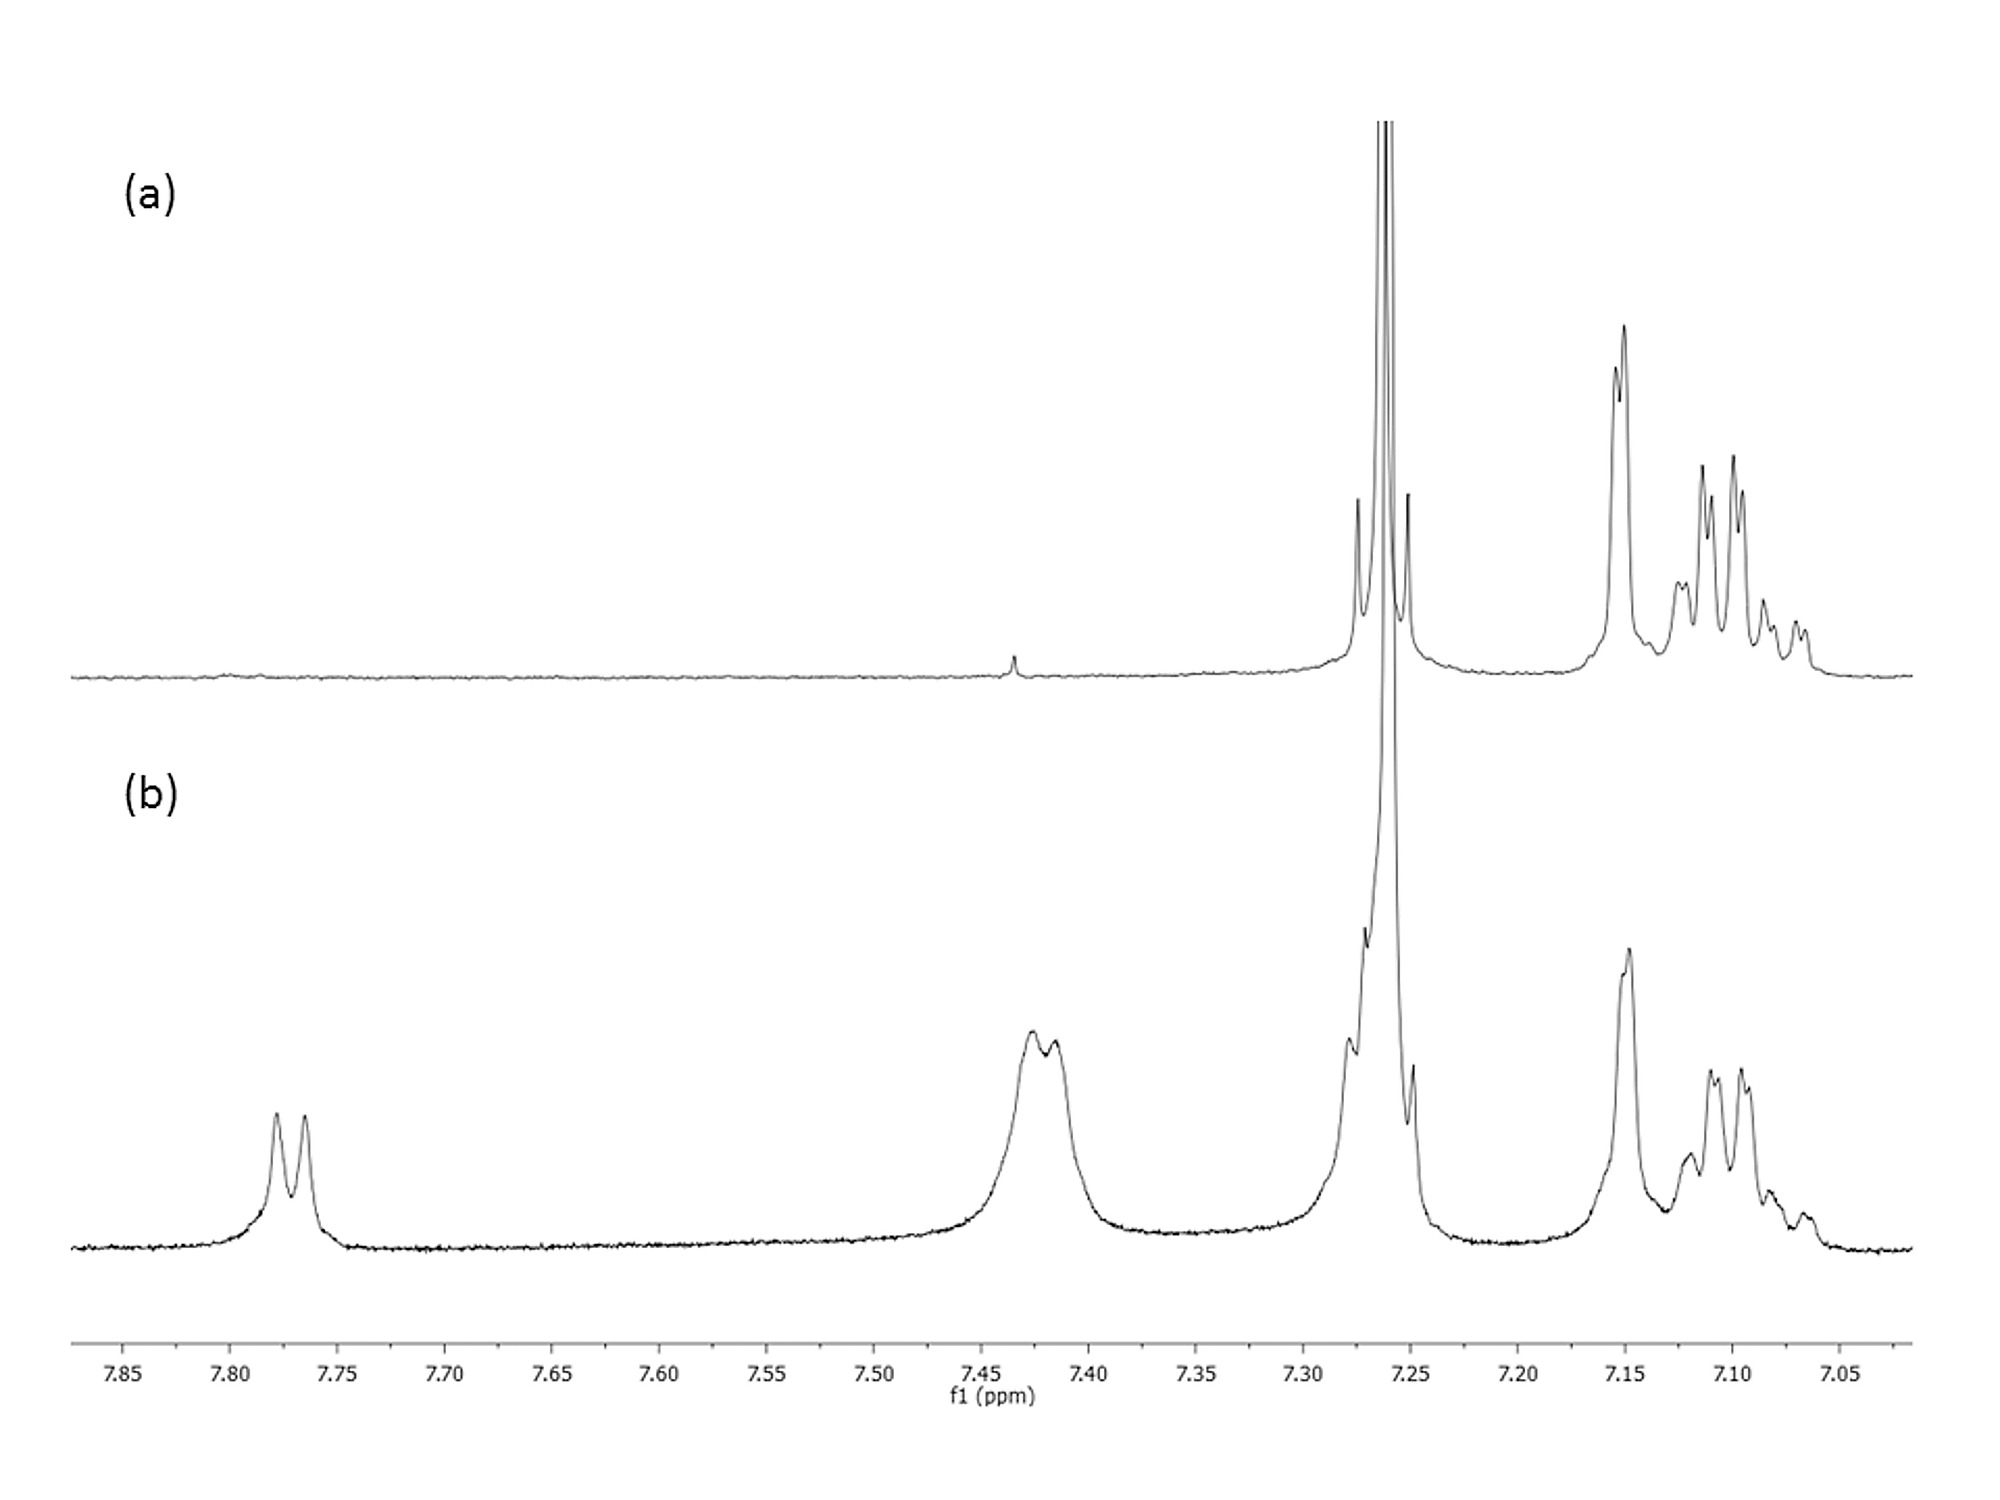 1h Nmr Spectra Of Sample 6 From Table 1 A And Sample 6 With